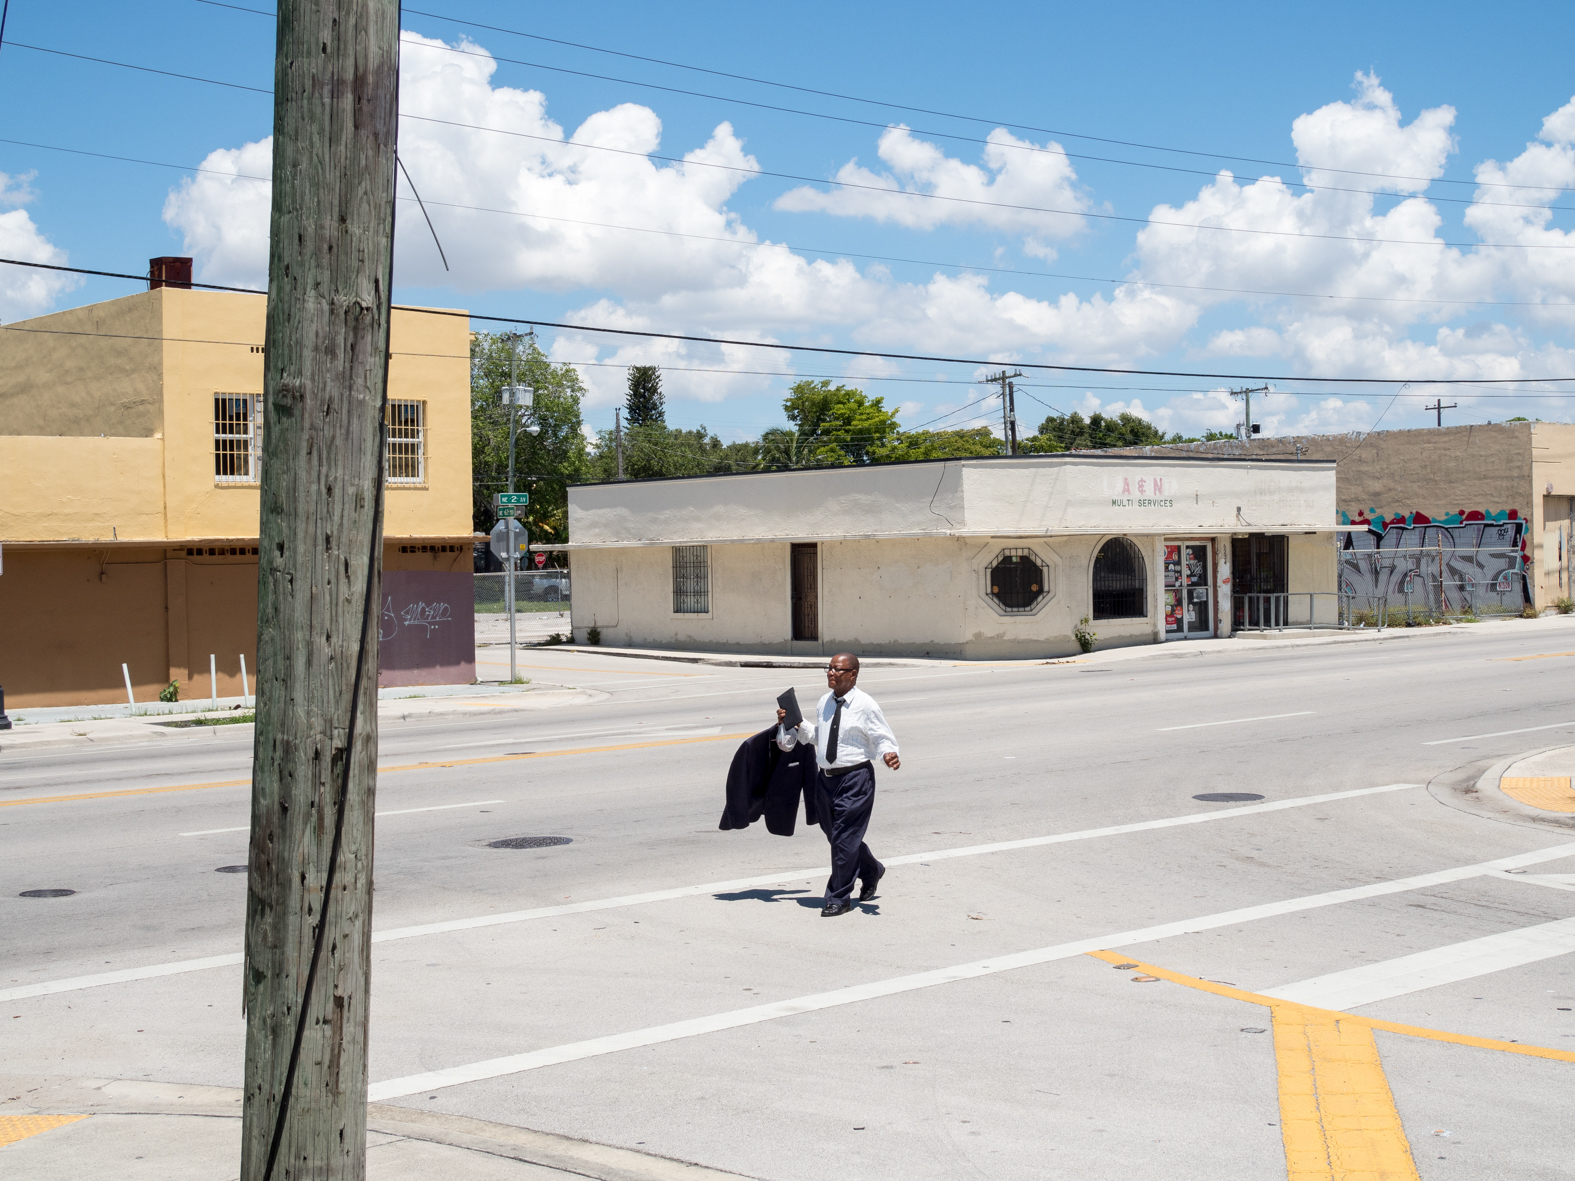 A man carrying his jacket after a Sunday church service in Little Haiti, a neighborhood of Miami, Florida, United States. It is home to many Haitian immigrant residents, as well as many residents from the rest of the Caribbean.Miami is a seaport city on the Atlantic Ocean in south Florida. Miami's metro area is the eighth-most populous and fourth-largest urban area in the U.S., with a population of around 5.5 million.Miami is a major center, and a leader in finance, commerce, culture, media, entertainment, the arts, and international trade. In 2008, Forbes magazine ranked Miami {quote}America's Cleanest City{quote}, for its year-round good air quality, vast green spaces, clean drinking water, clean streets, and city-wide recycling programs. According to a 2009 UBS study of 73 world cities, Miami was ranked as the richest city in the United States, and the world's fifth-richest city in terms of purchasing power. Miami is nicknamed the {quote}Capital of Latin America{quote}, is the second largest U.S. city with a Spanish-speaking majority, and the largest city with a Cuban-American plurality.©Peter Dench/Getty Images Reportage